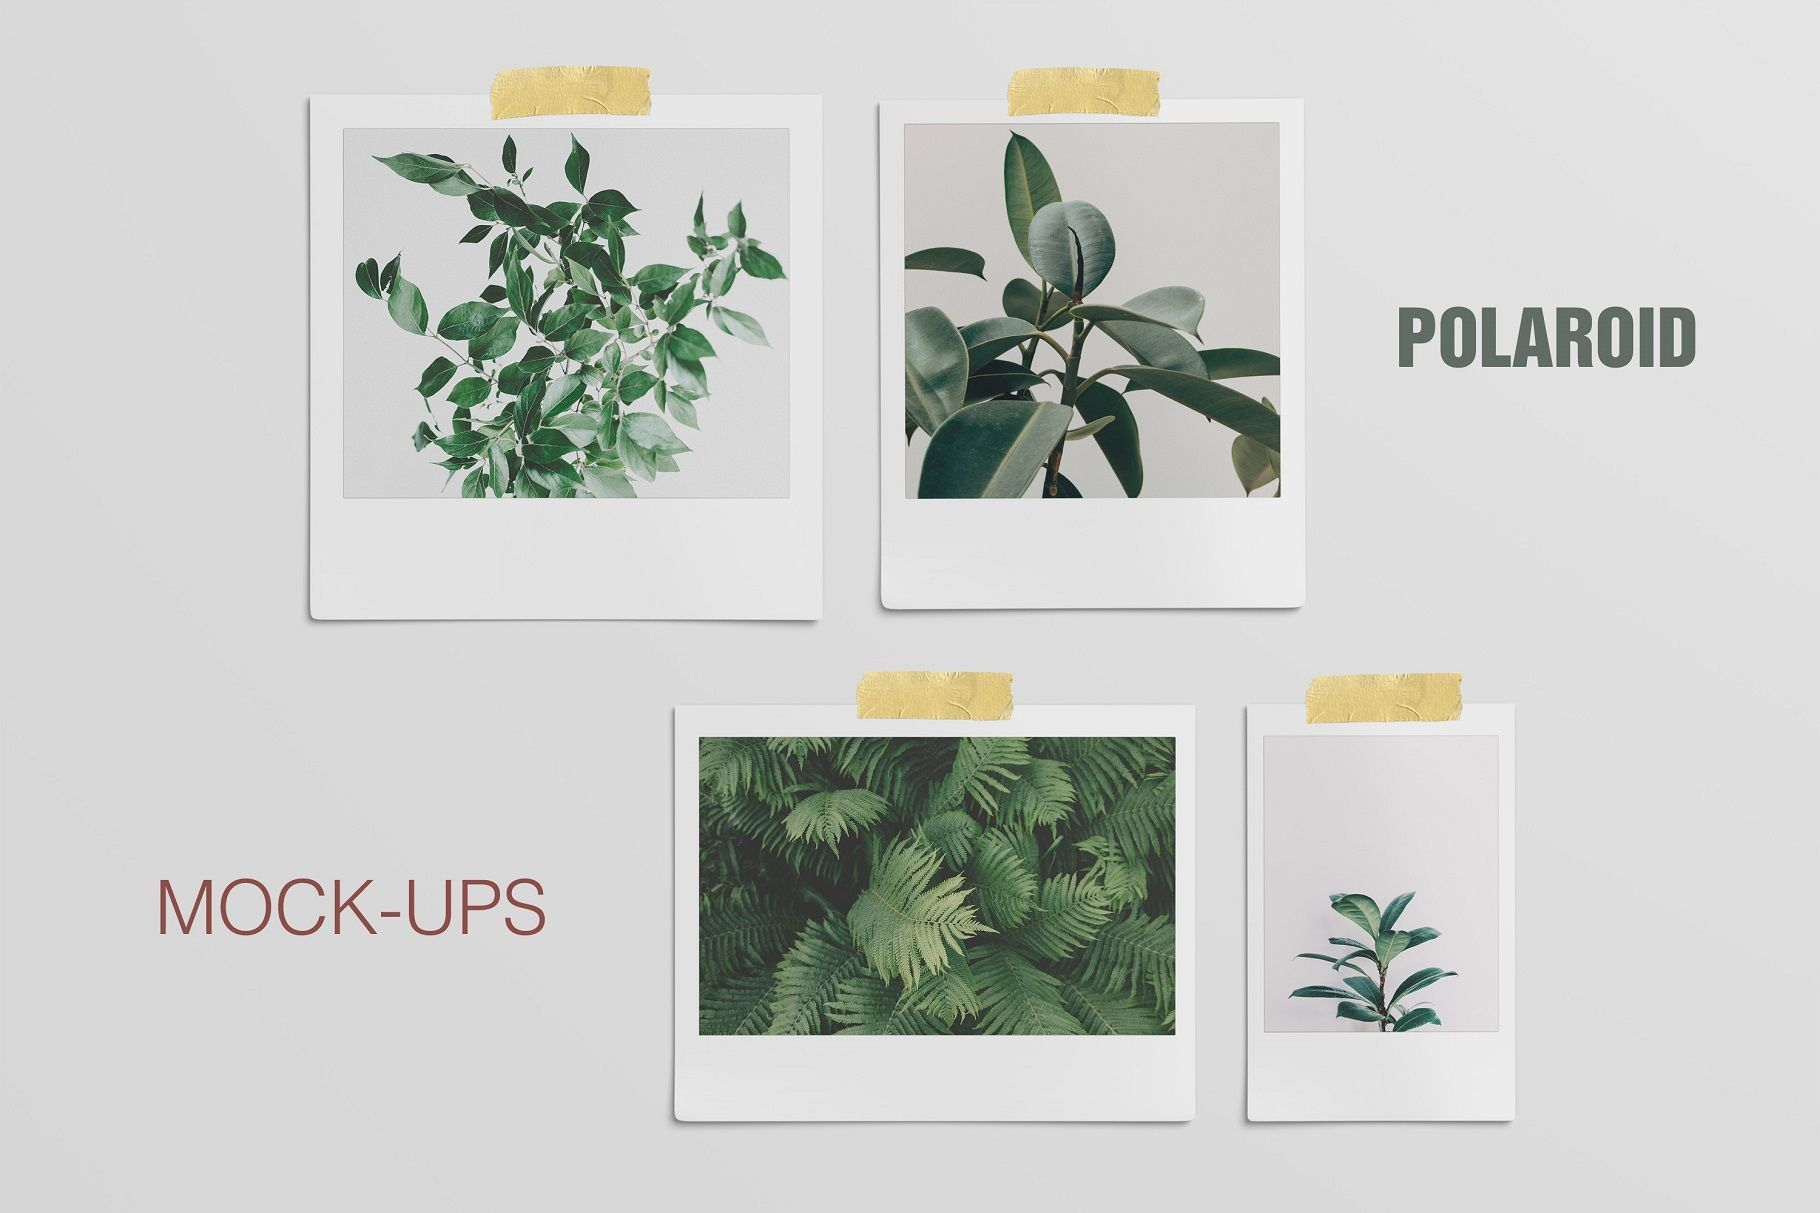 Download Polaroid Mockups Set Today We Have A Huge Range Of Mock Up Products Available Commercial Licens Design Mockup Free Psd Template Free Free Psd Design